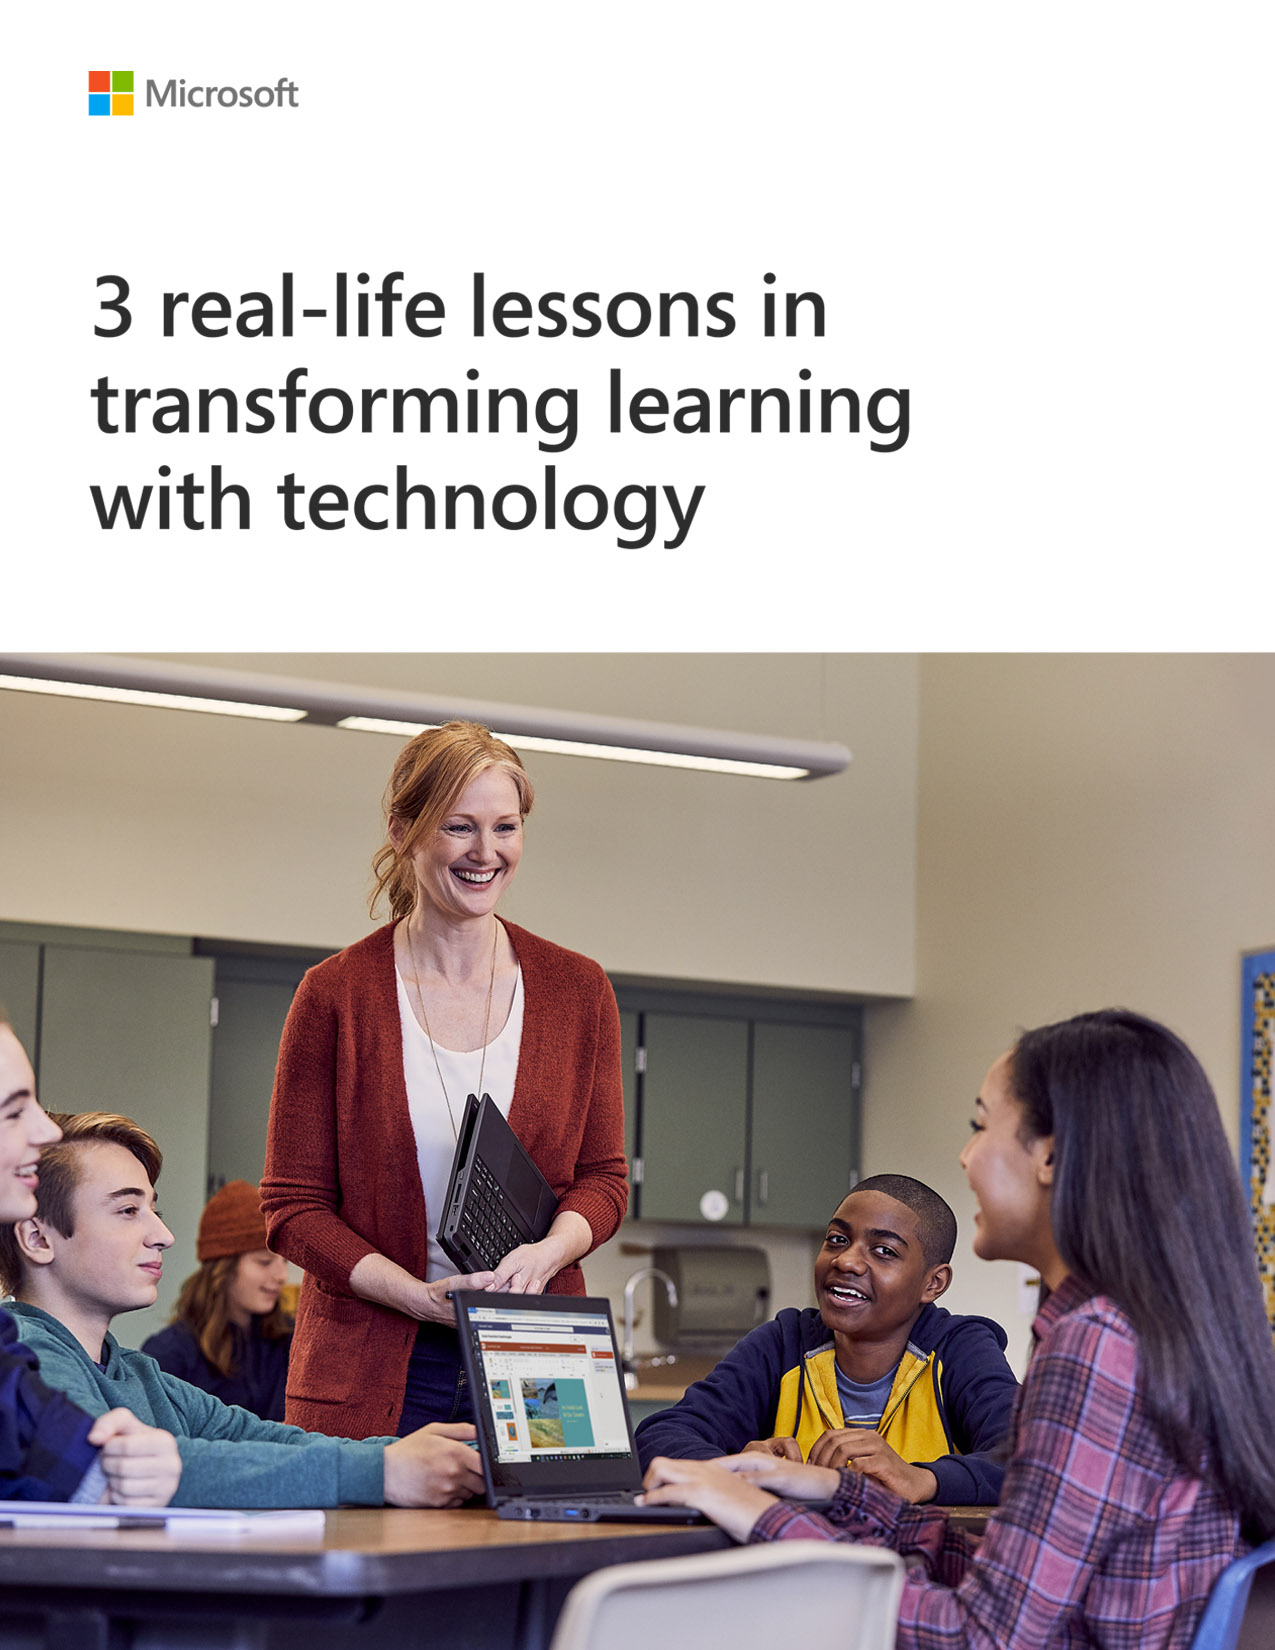 3 Real-Life Lessons in Transforming Learning with Technology